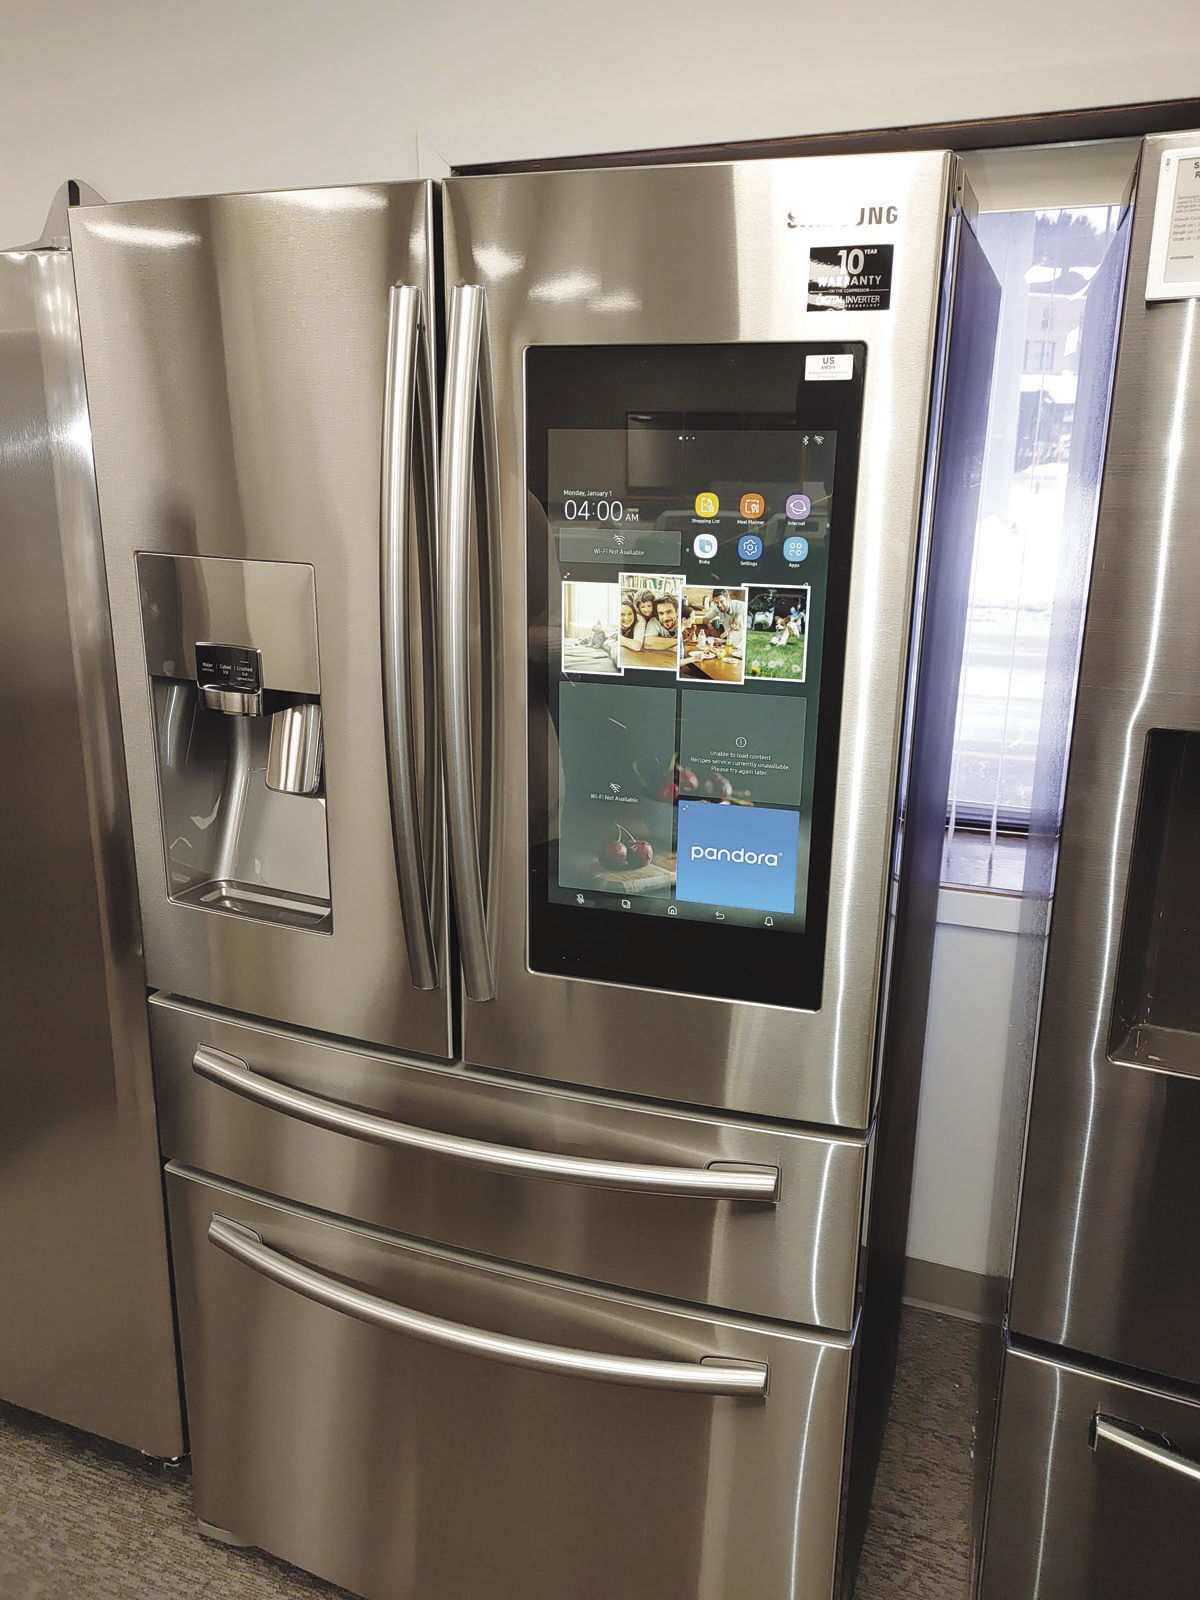 Samsung refigerator with tablet